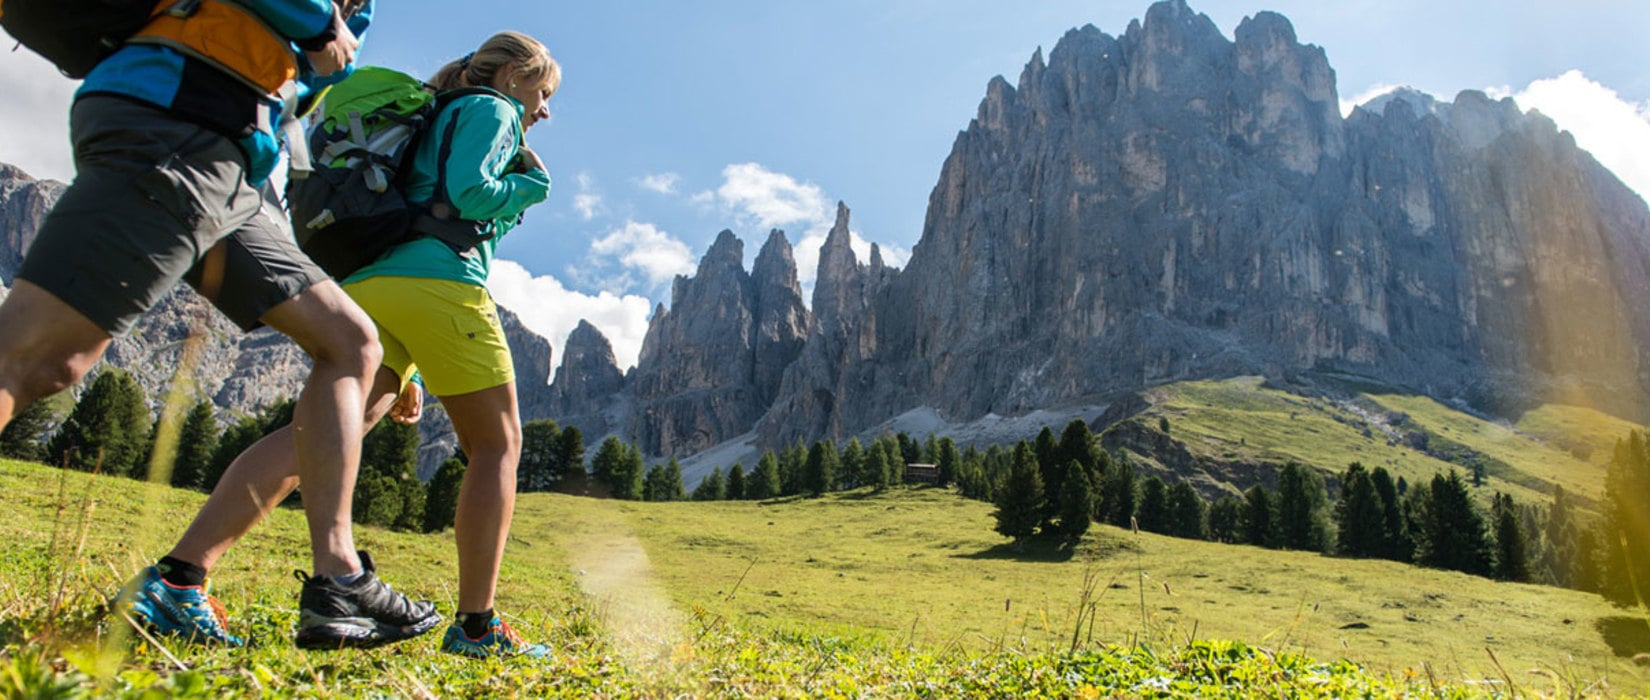 Time for a Summer Holiday in South Tyrol